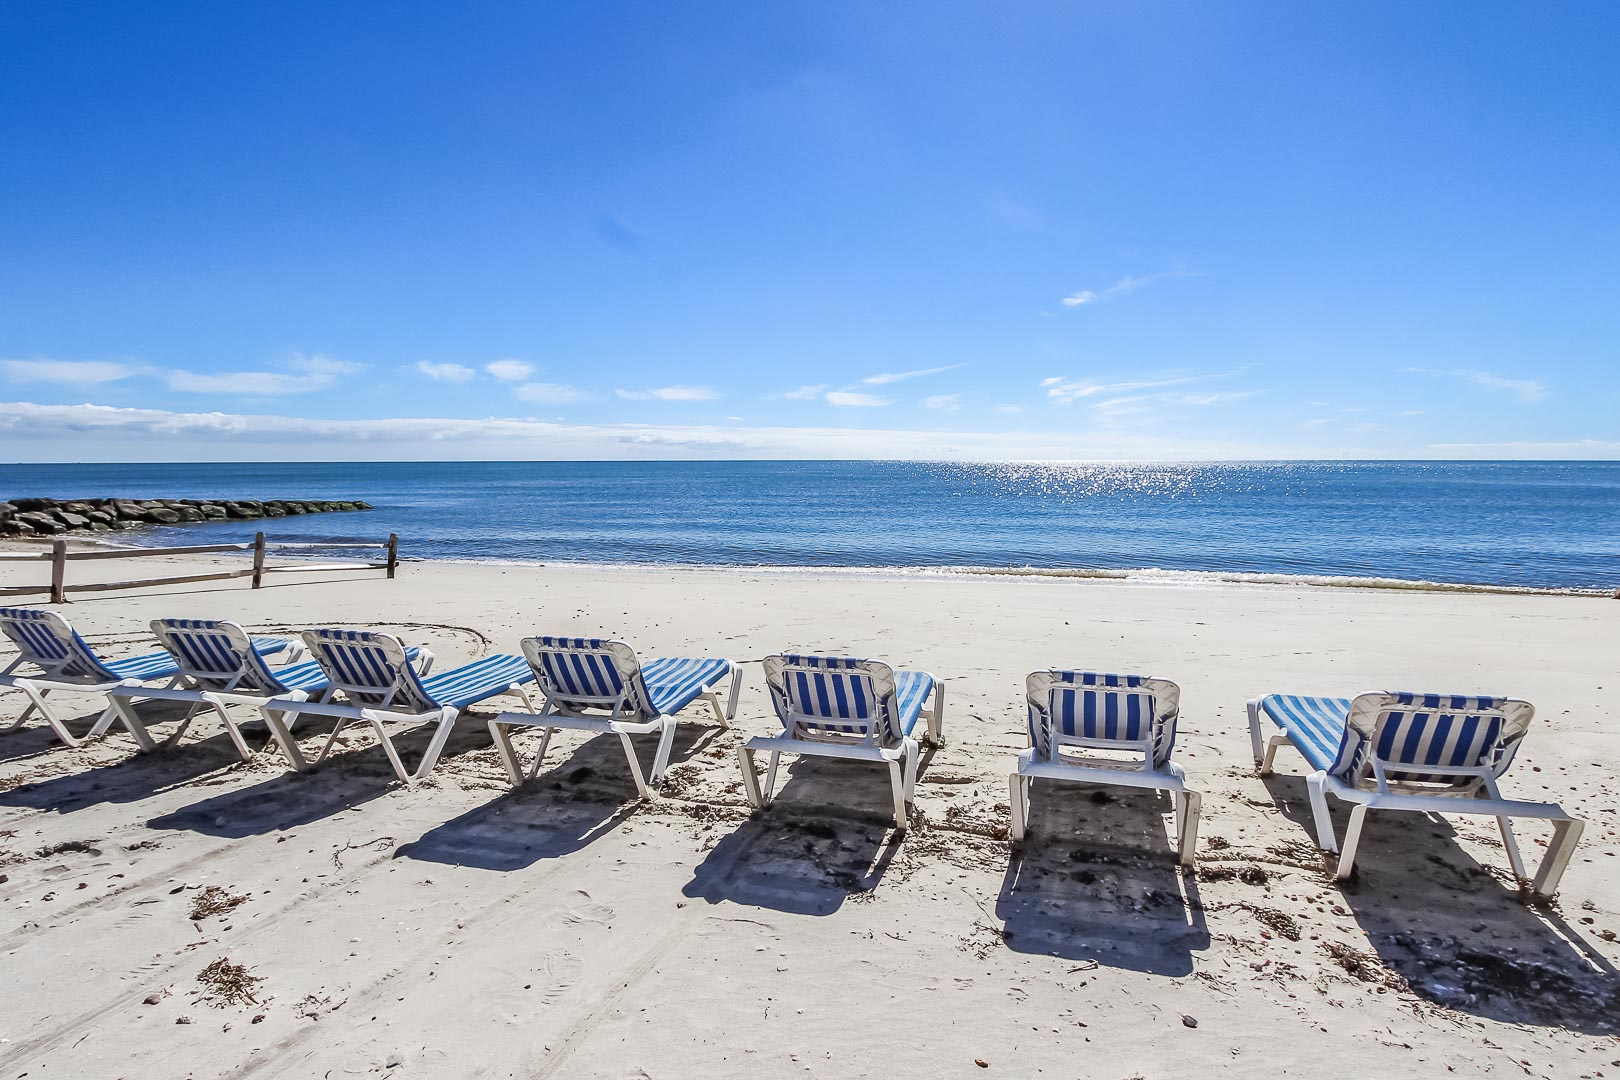 Beach lounging chairs for the family to enjoy at VRI's Seawinds II Resort in Massachusetts.